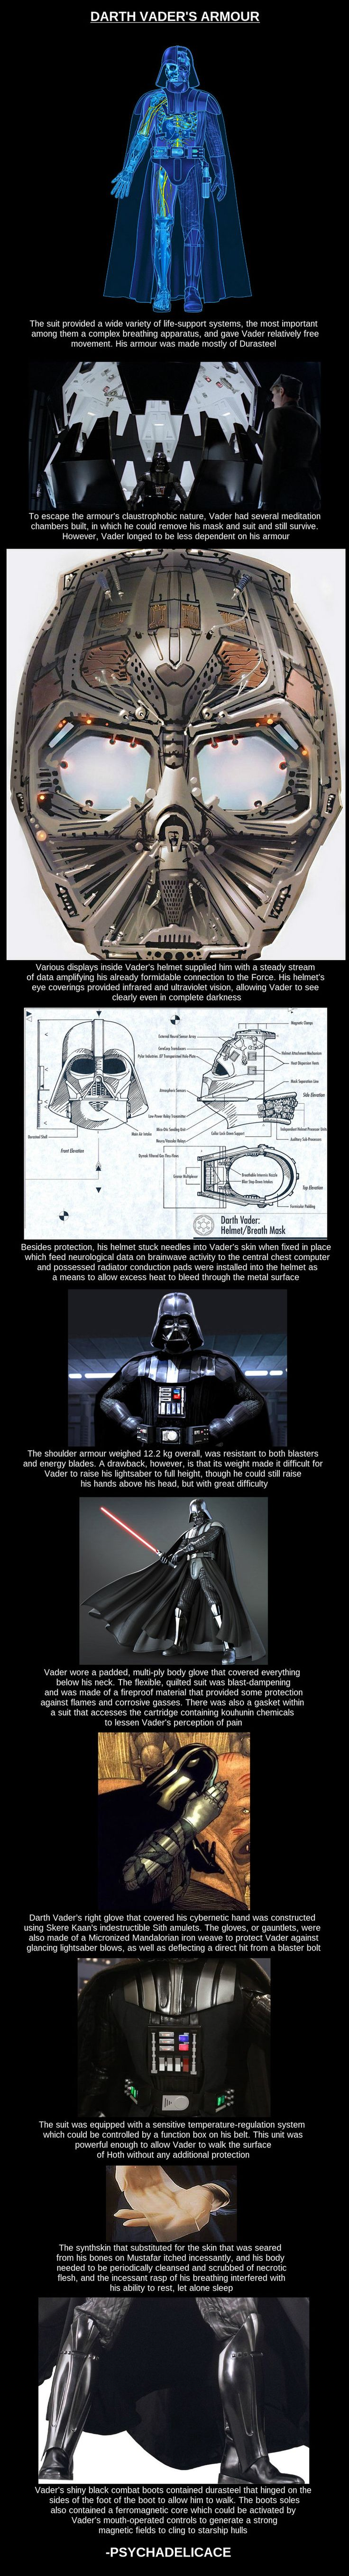 10 things you didn't know about Vader's armour